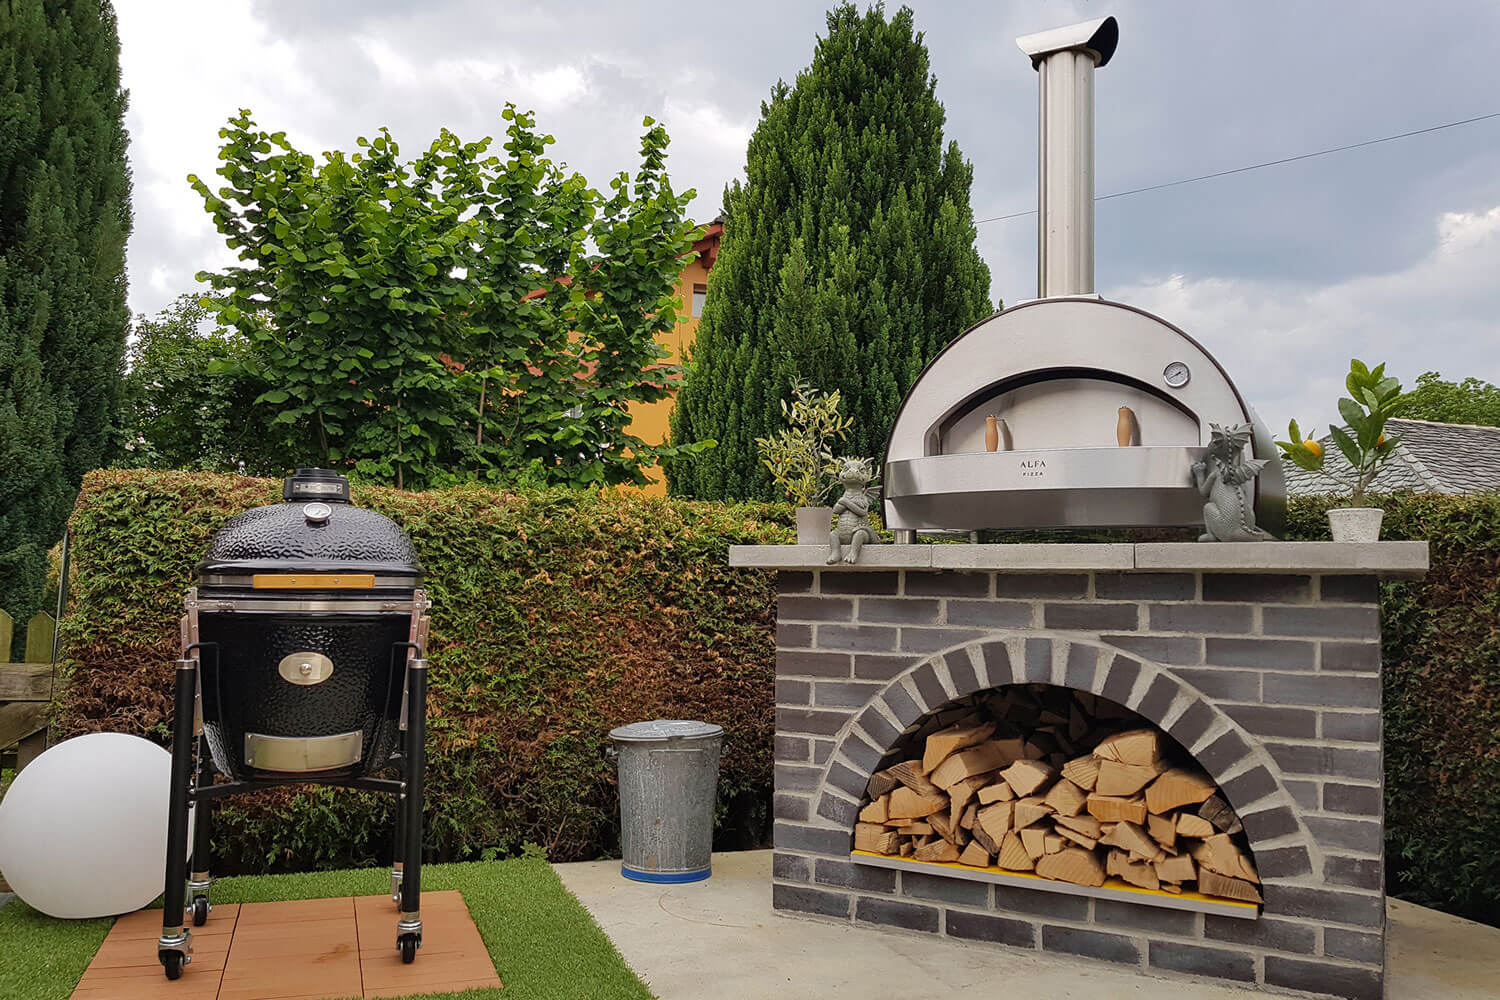 Residential Wood And Gas Fired Ovens Grilling And Baking Your Food